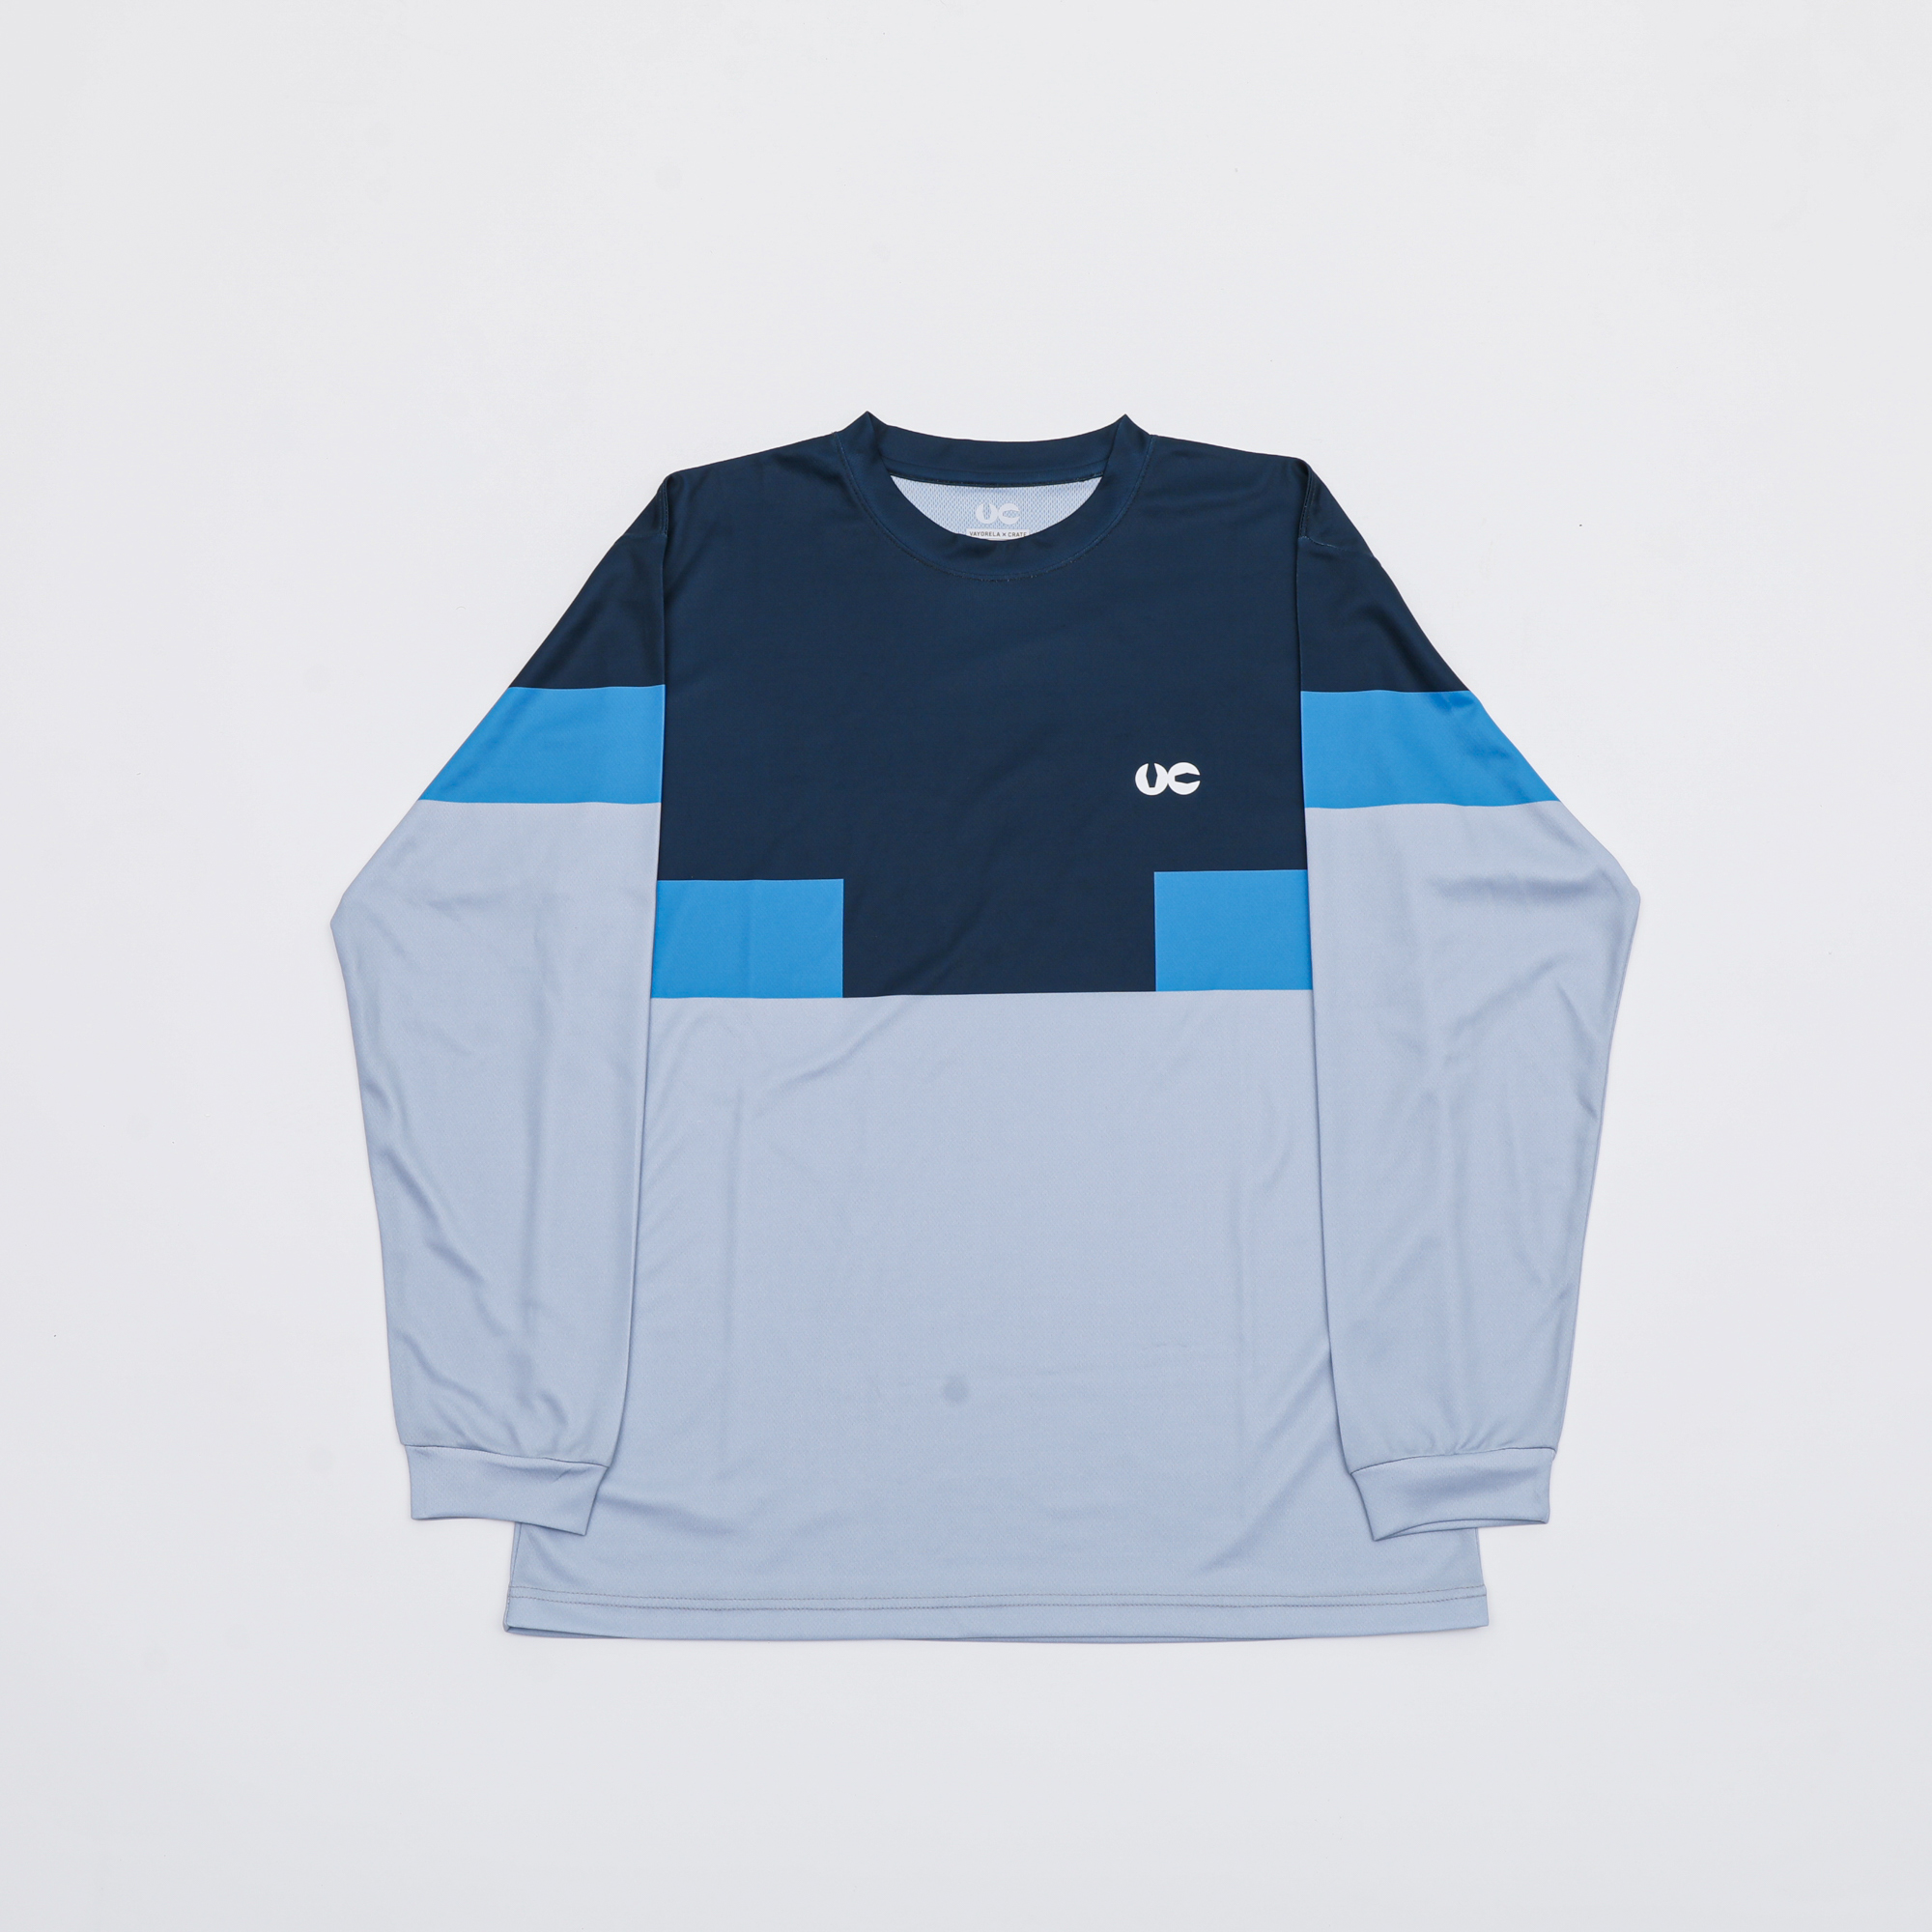 VC 3COLOR L/S TEE NVY/OC/GRY